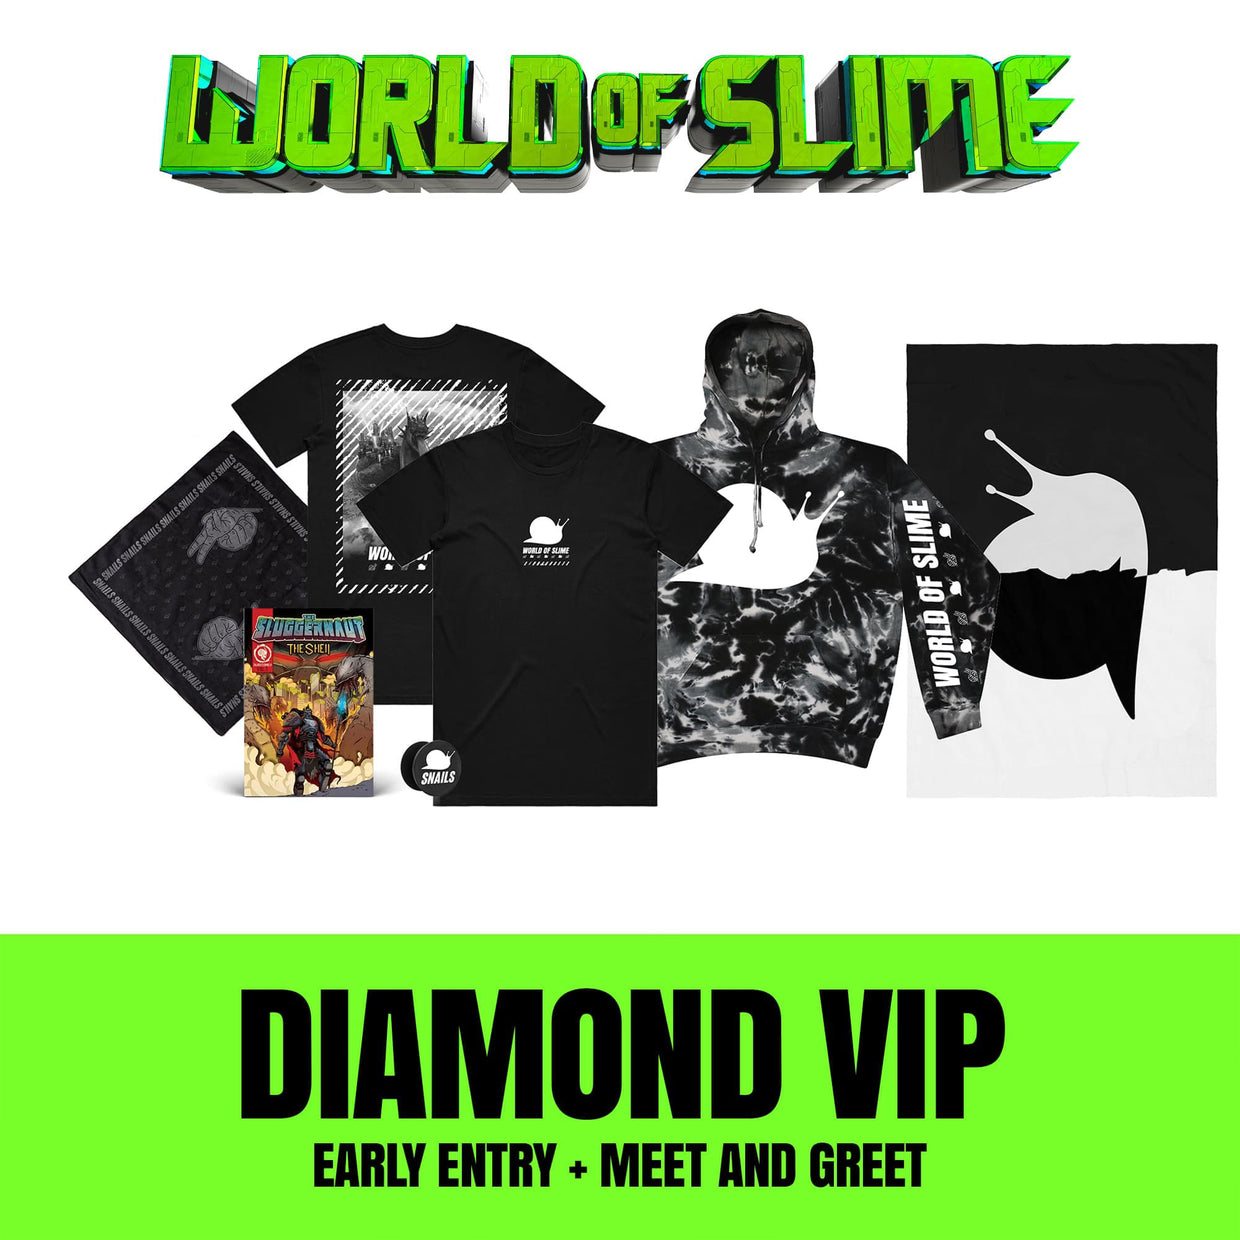 World Of Slime Tour - Los Angeles - 11/16 - VIP UPGRADE